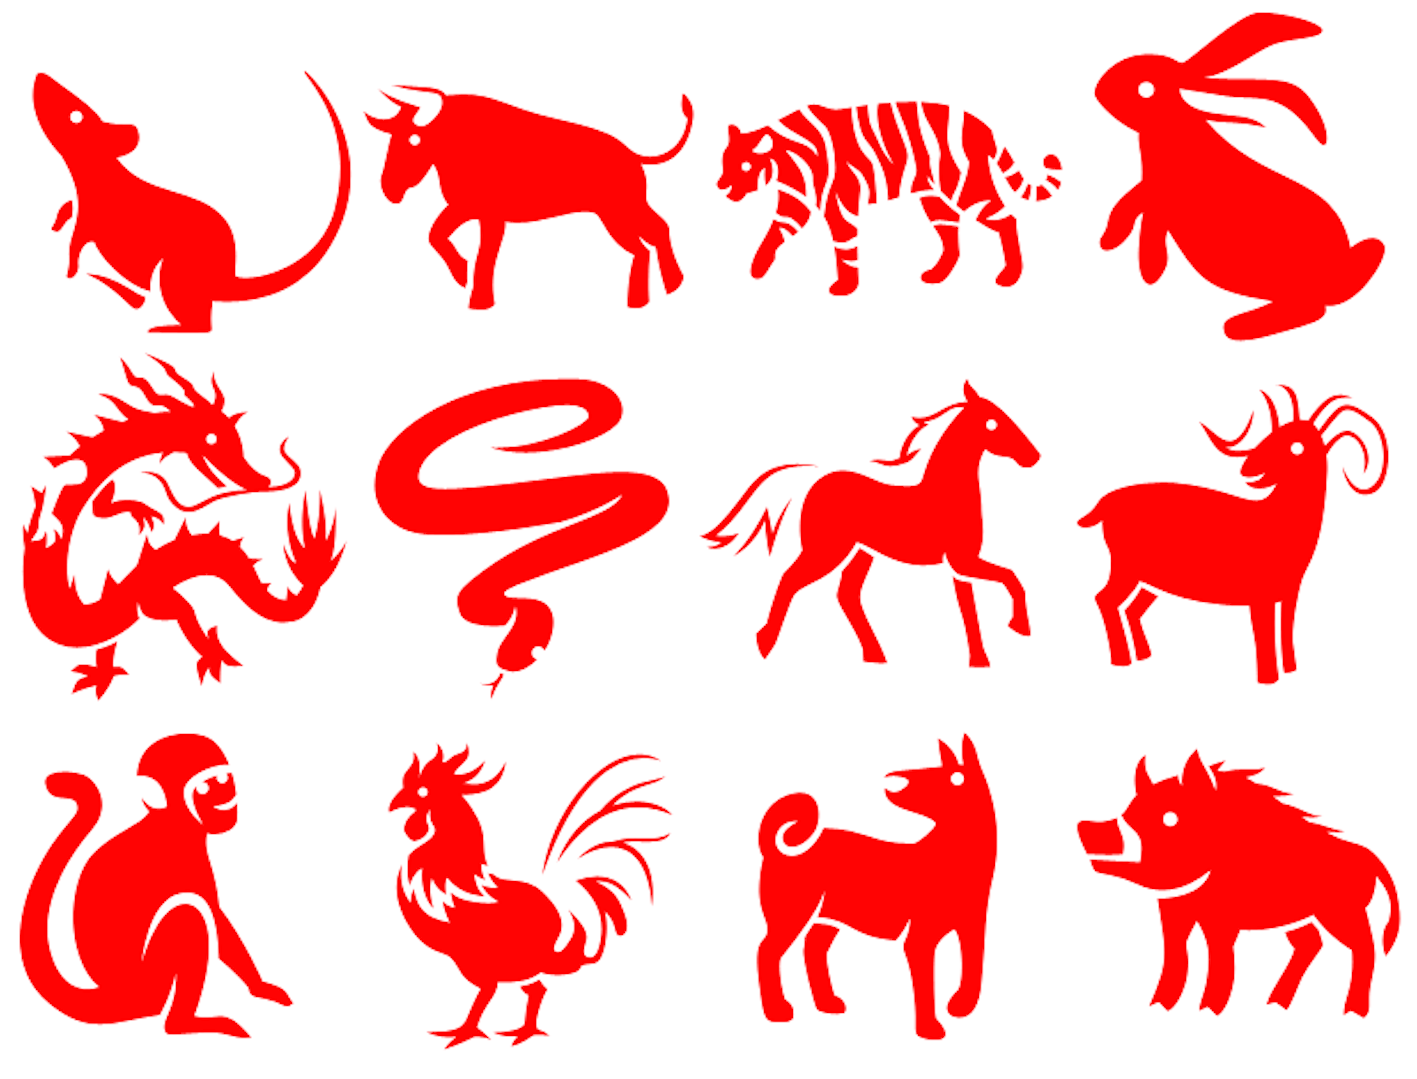 Chinese zodiac signs 1 integrative acupuncture chinese zodiac signs 1 biocorpaavc Gallery